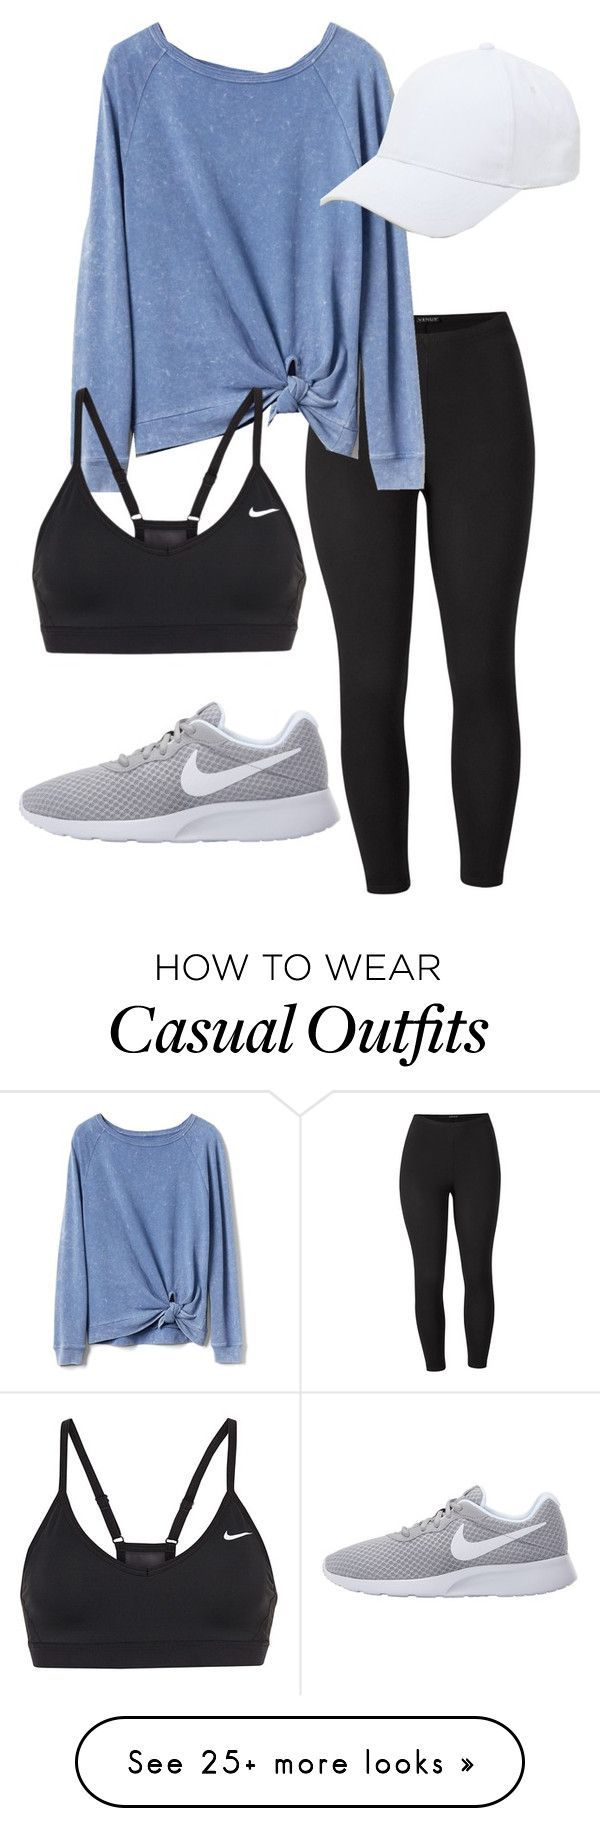 25 casual plus size winter outfits you have to try 20 - 25-casual-plus-size-winter-outfits-you-have-to-try-20